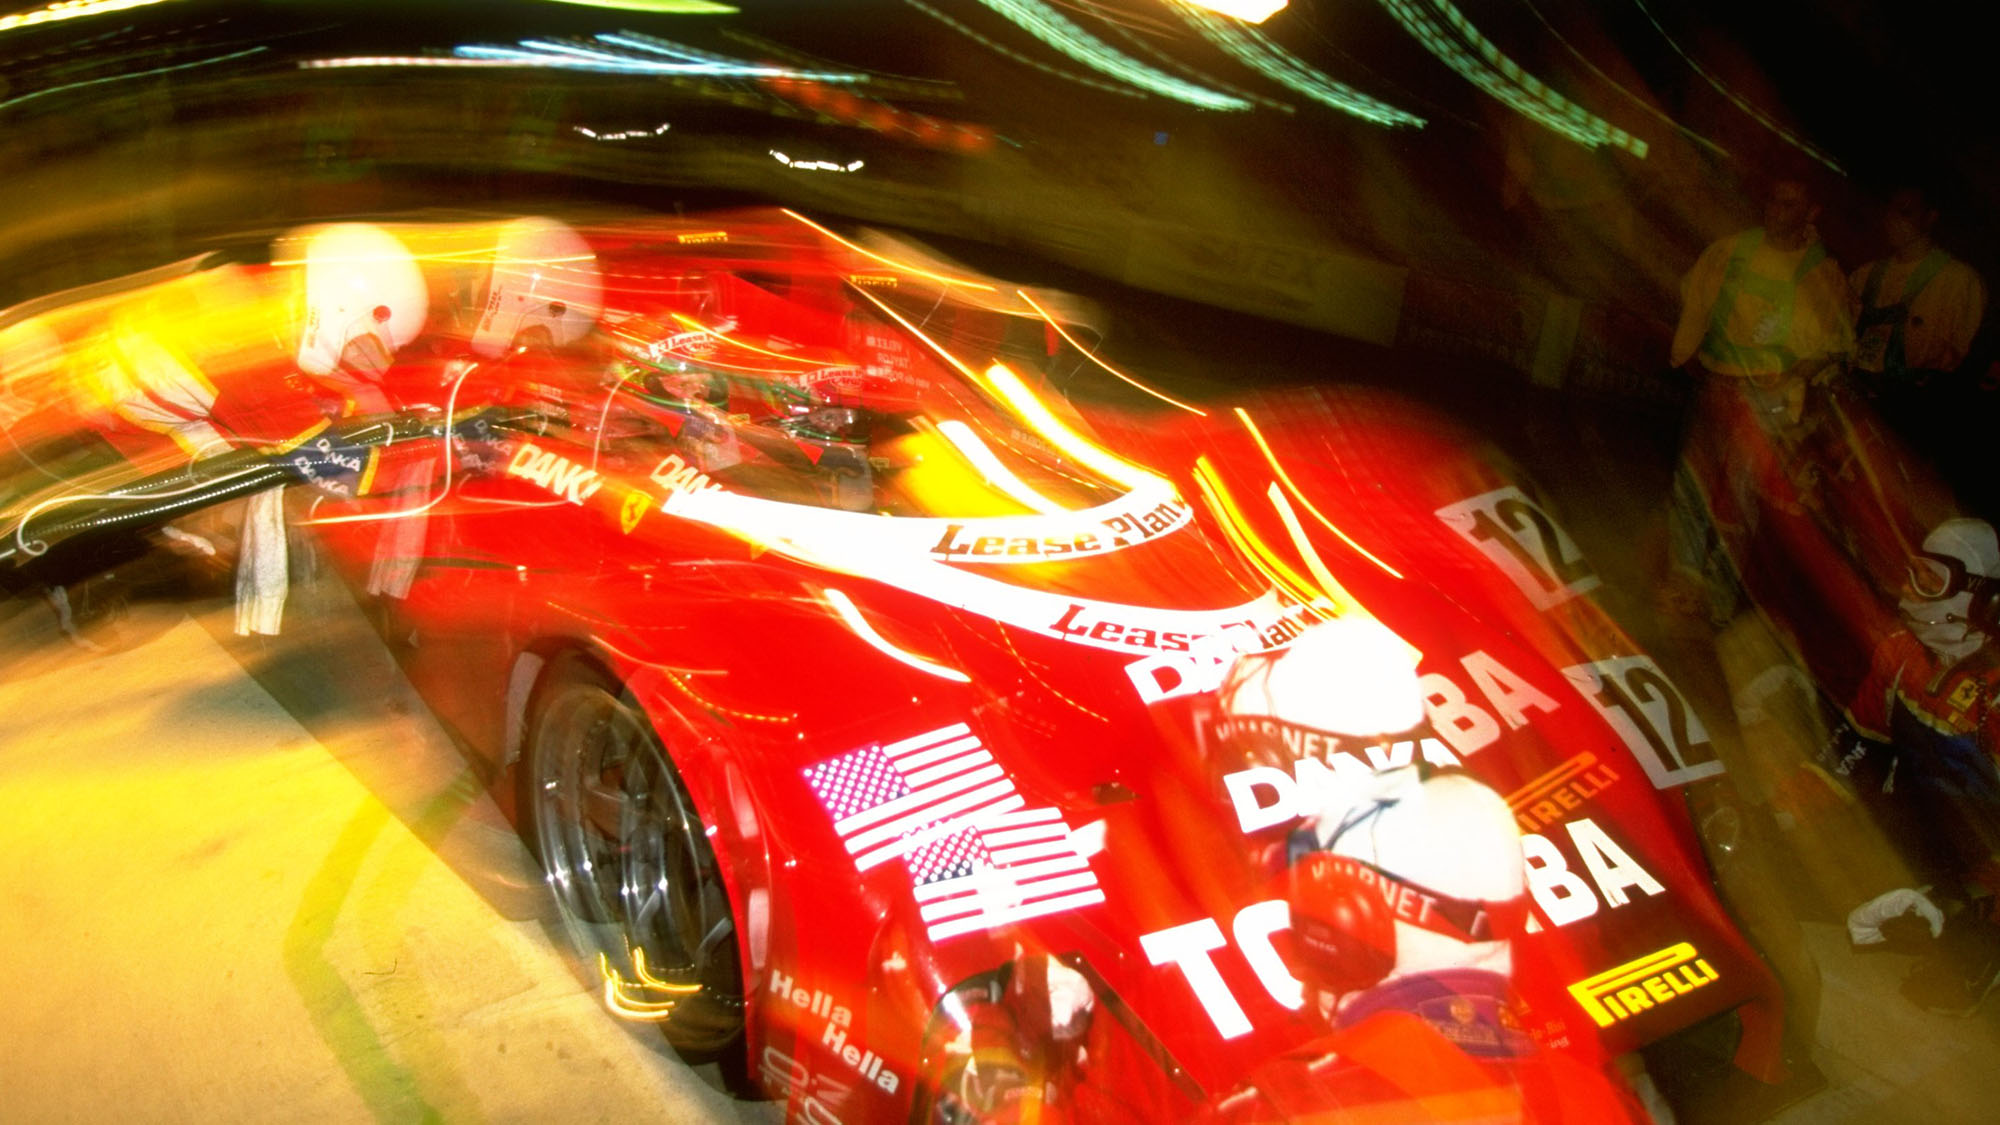 6-7 Jun 1998: Impression of the Doyle-Risi Racing Ferrari 333SP driven by Wayne Taylor of South Africa, Eric van der Poele of Belgium and Fermin Velez of Spain during the Le Mans 24 Hour Endurance Race at the Circuit de la Sarthe in Le Mans, France. Taylor, Van de Poele and Velez finished in eighth place after 332 laps. \ Mandatory Credit: Stu Forster/Allsport